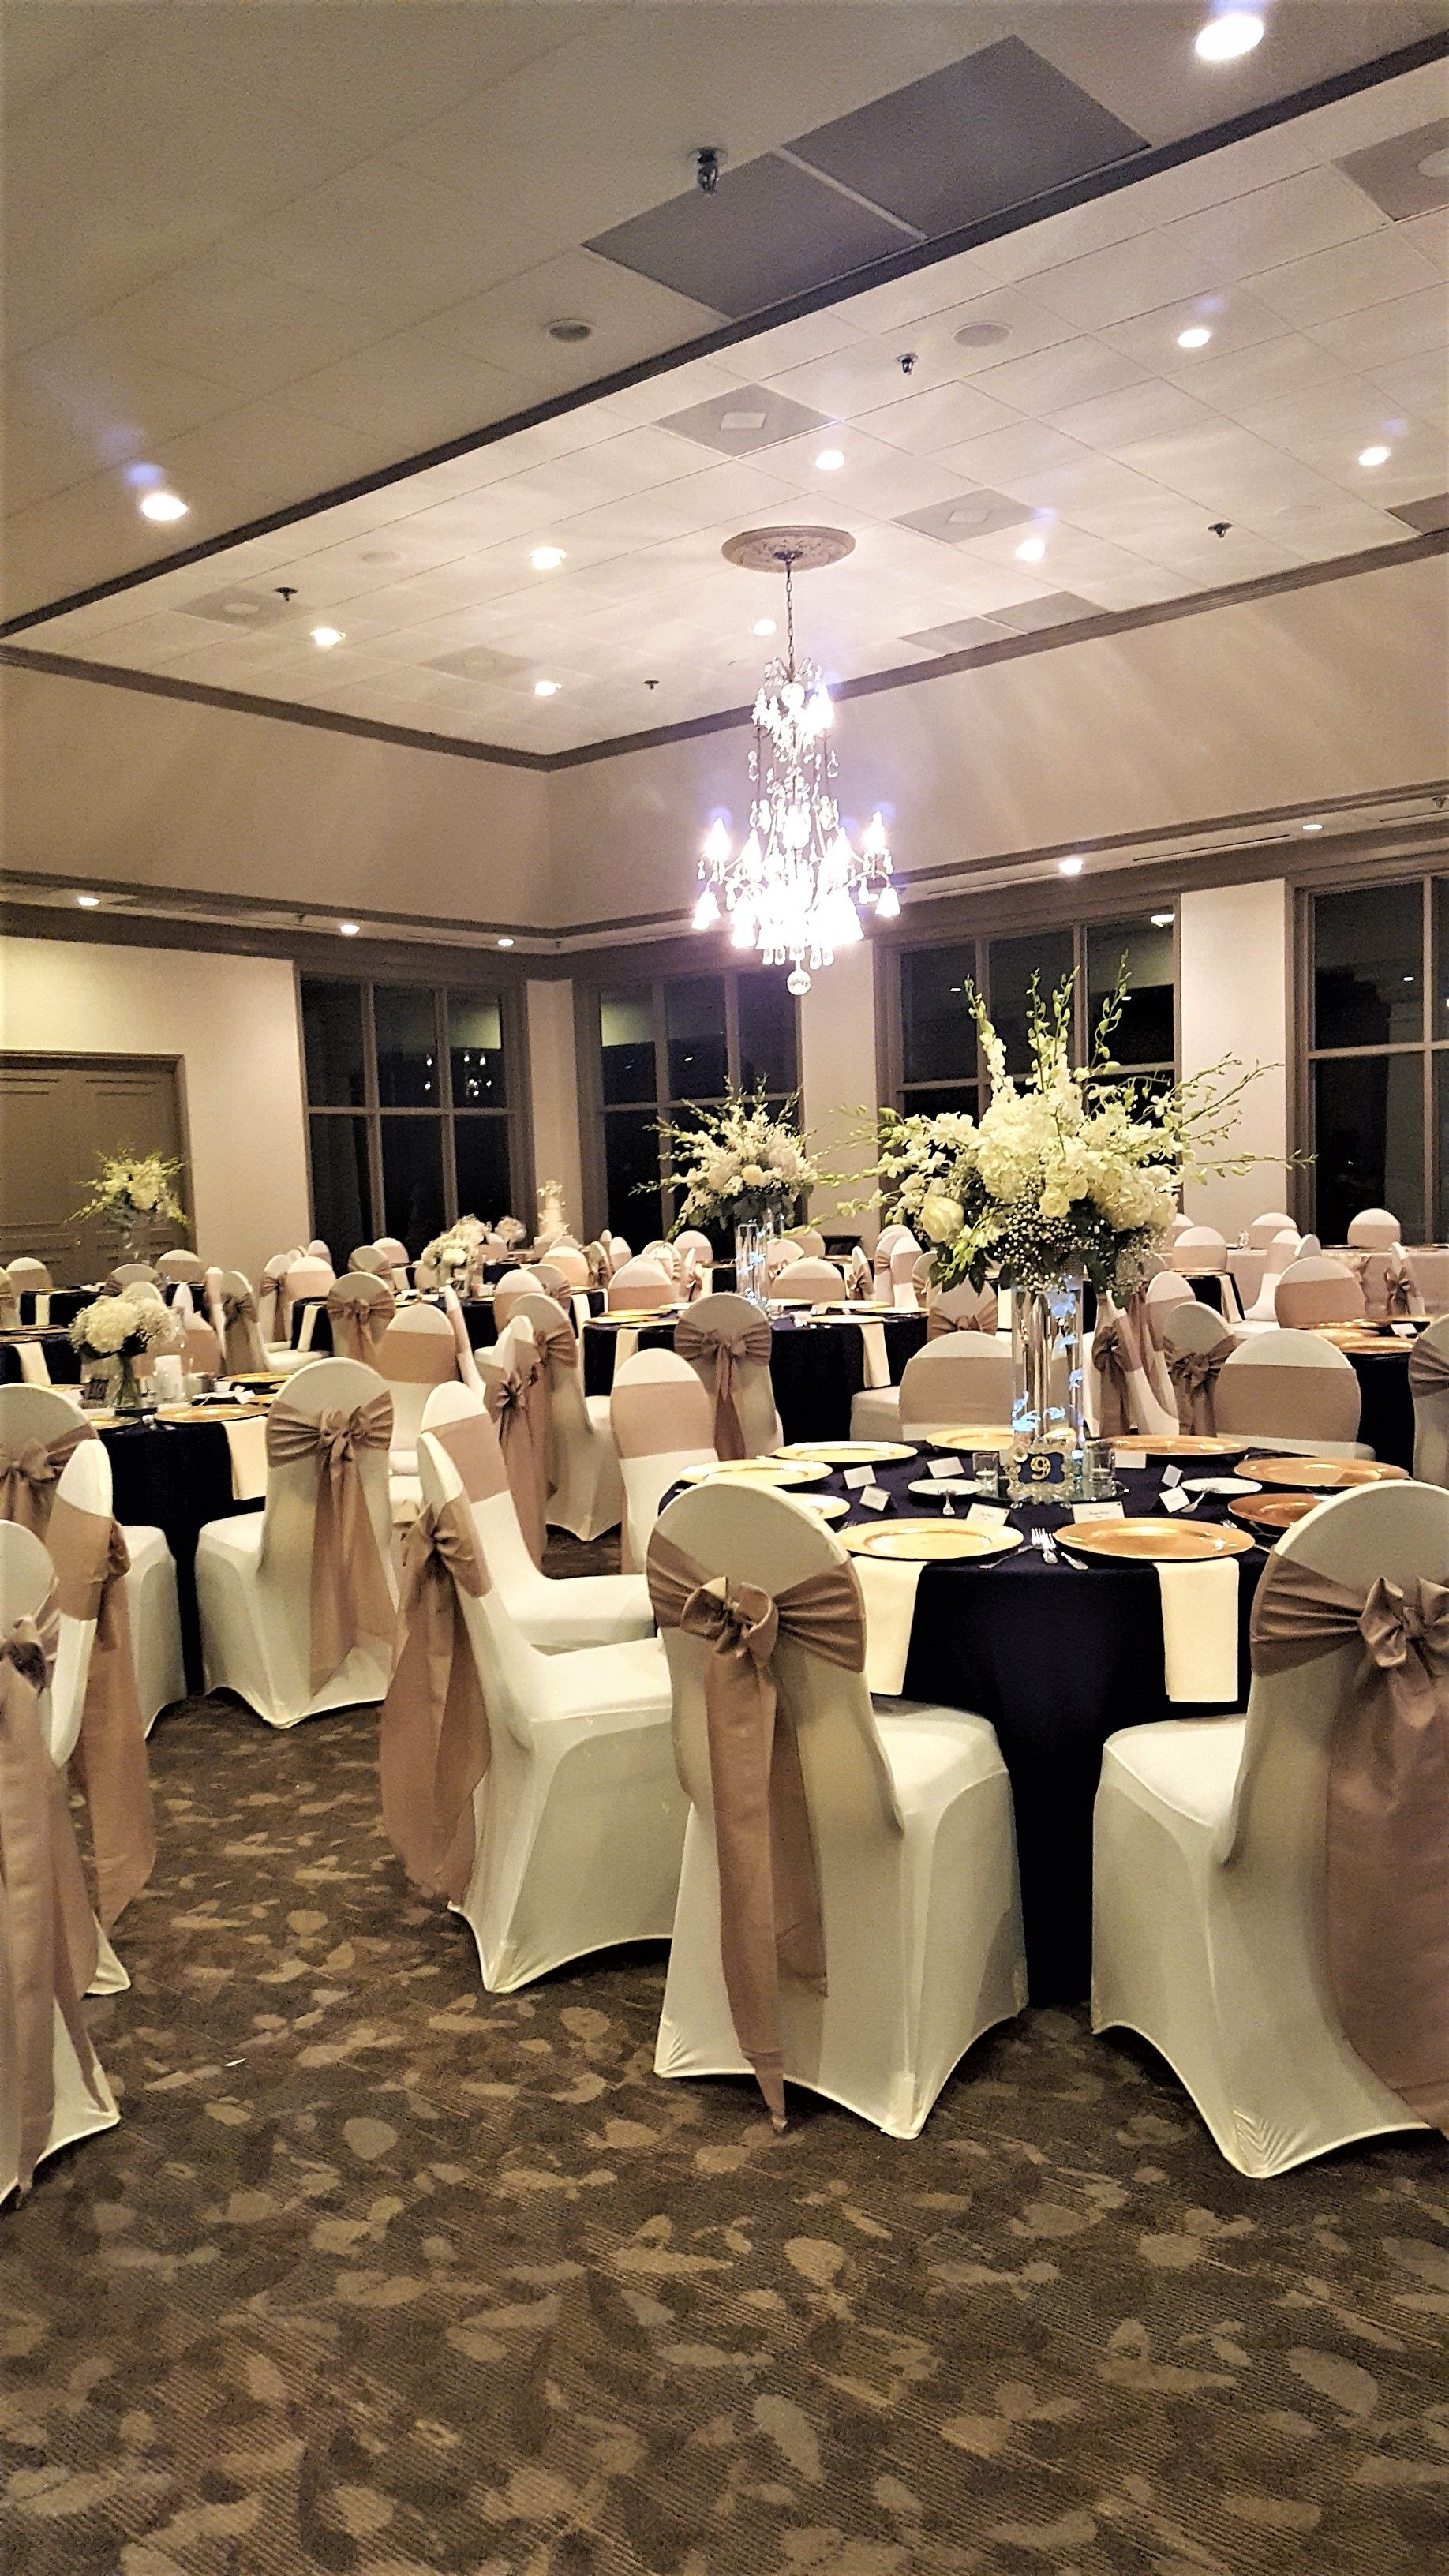 Champagne Satin Sashes on Ivory Spandex Covers in the Congress